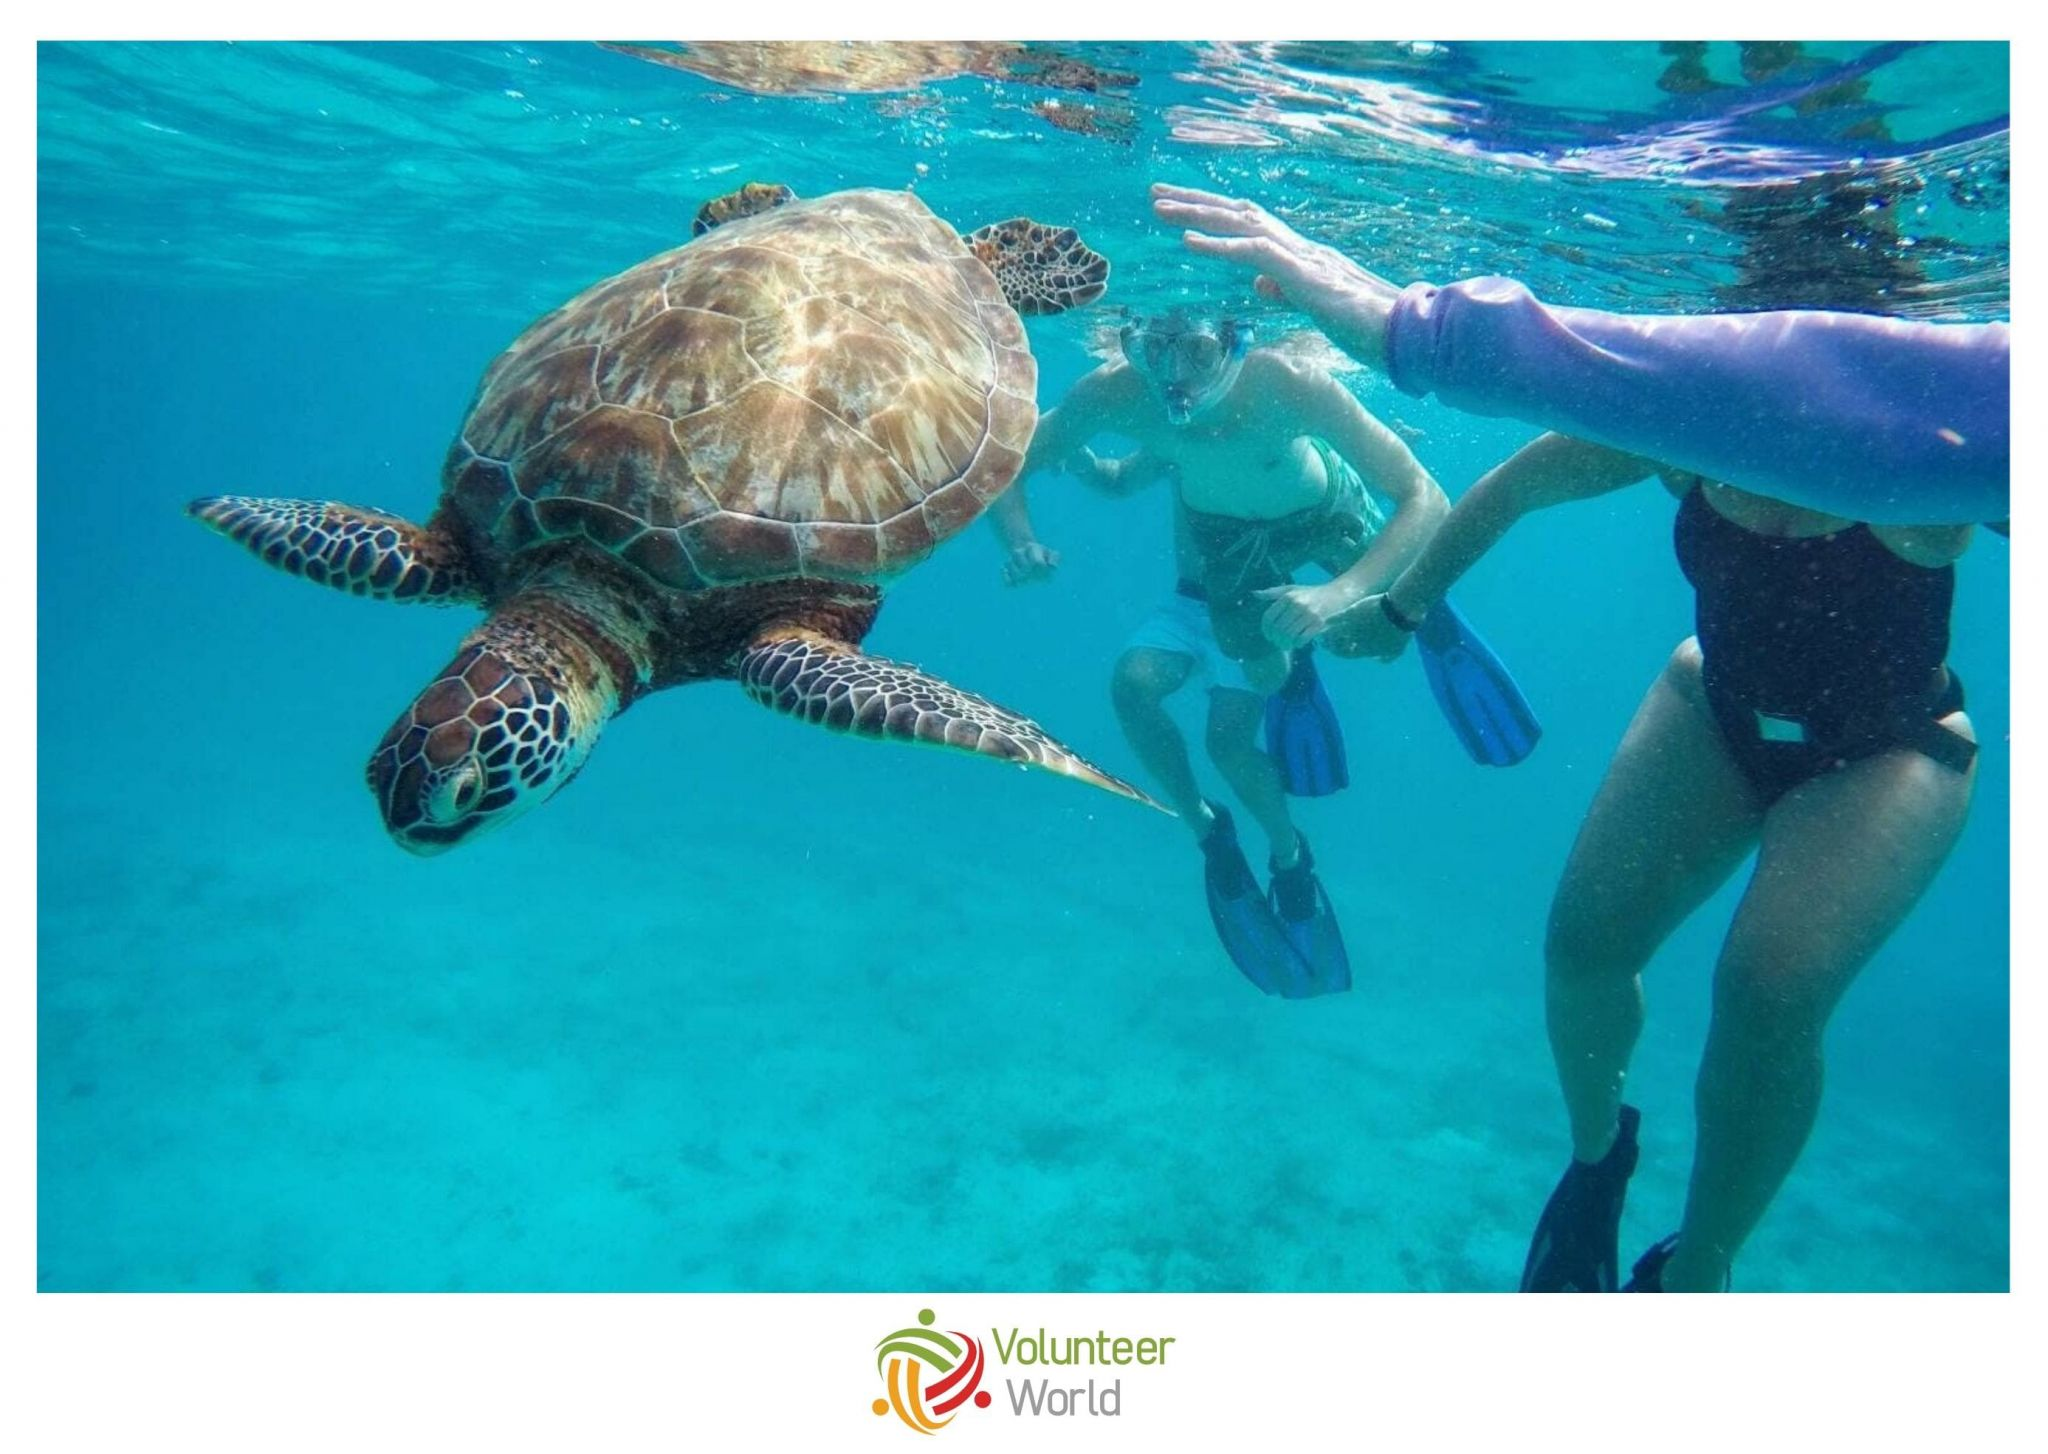 Volunteer with Sea Turtles in Belize